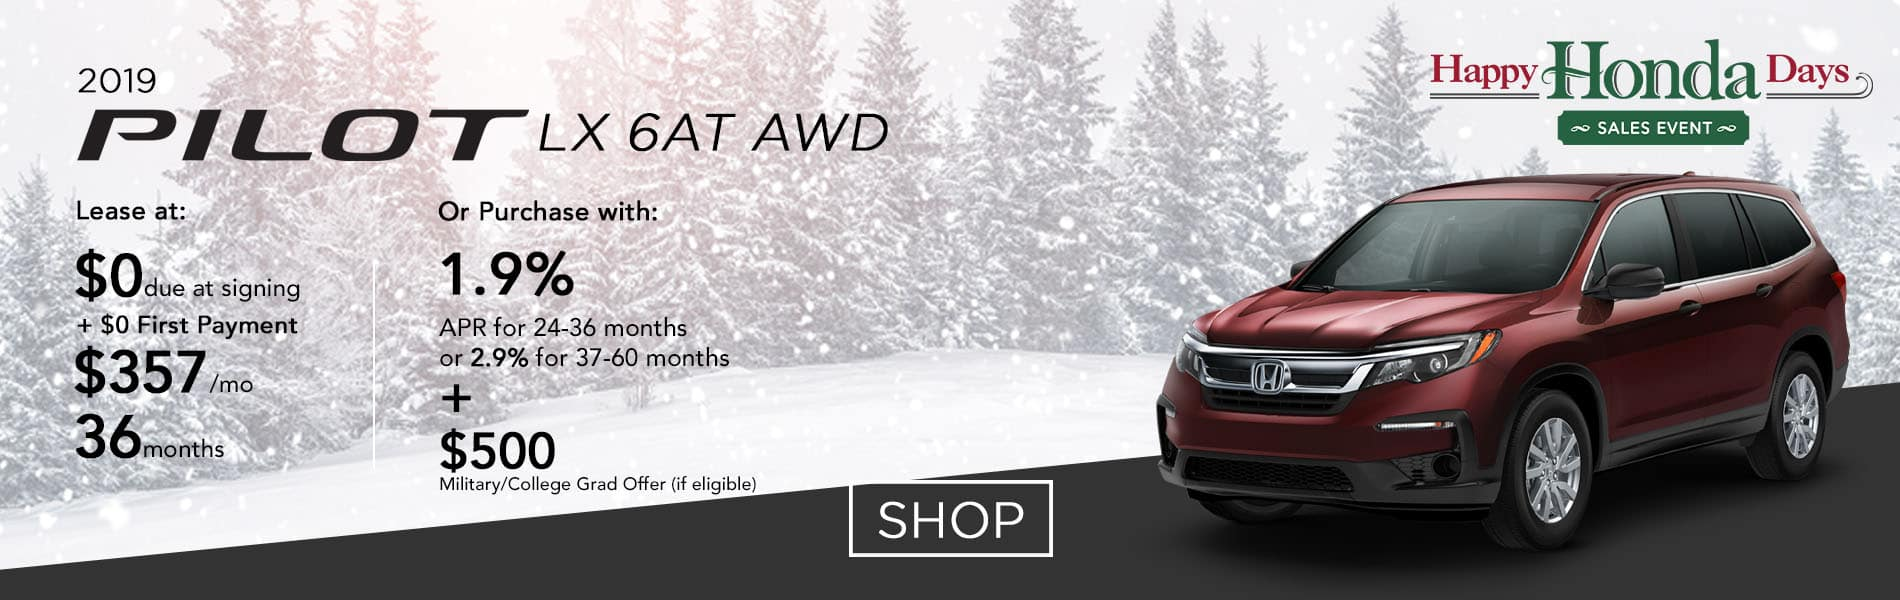 Lease a 2019 Pilot LX 6AT AWD for $357 per month or purchase with 1.9% APR up to 36 months